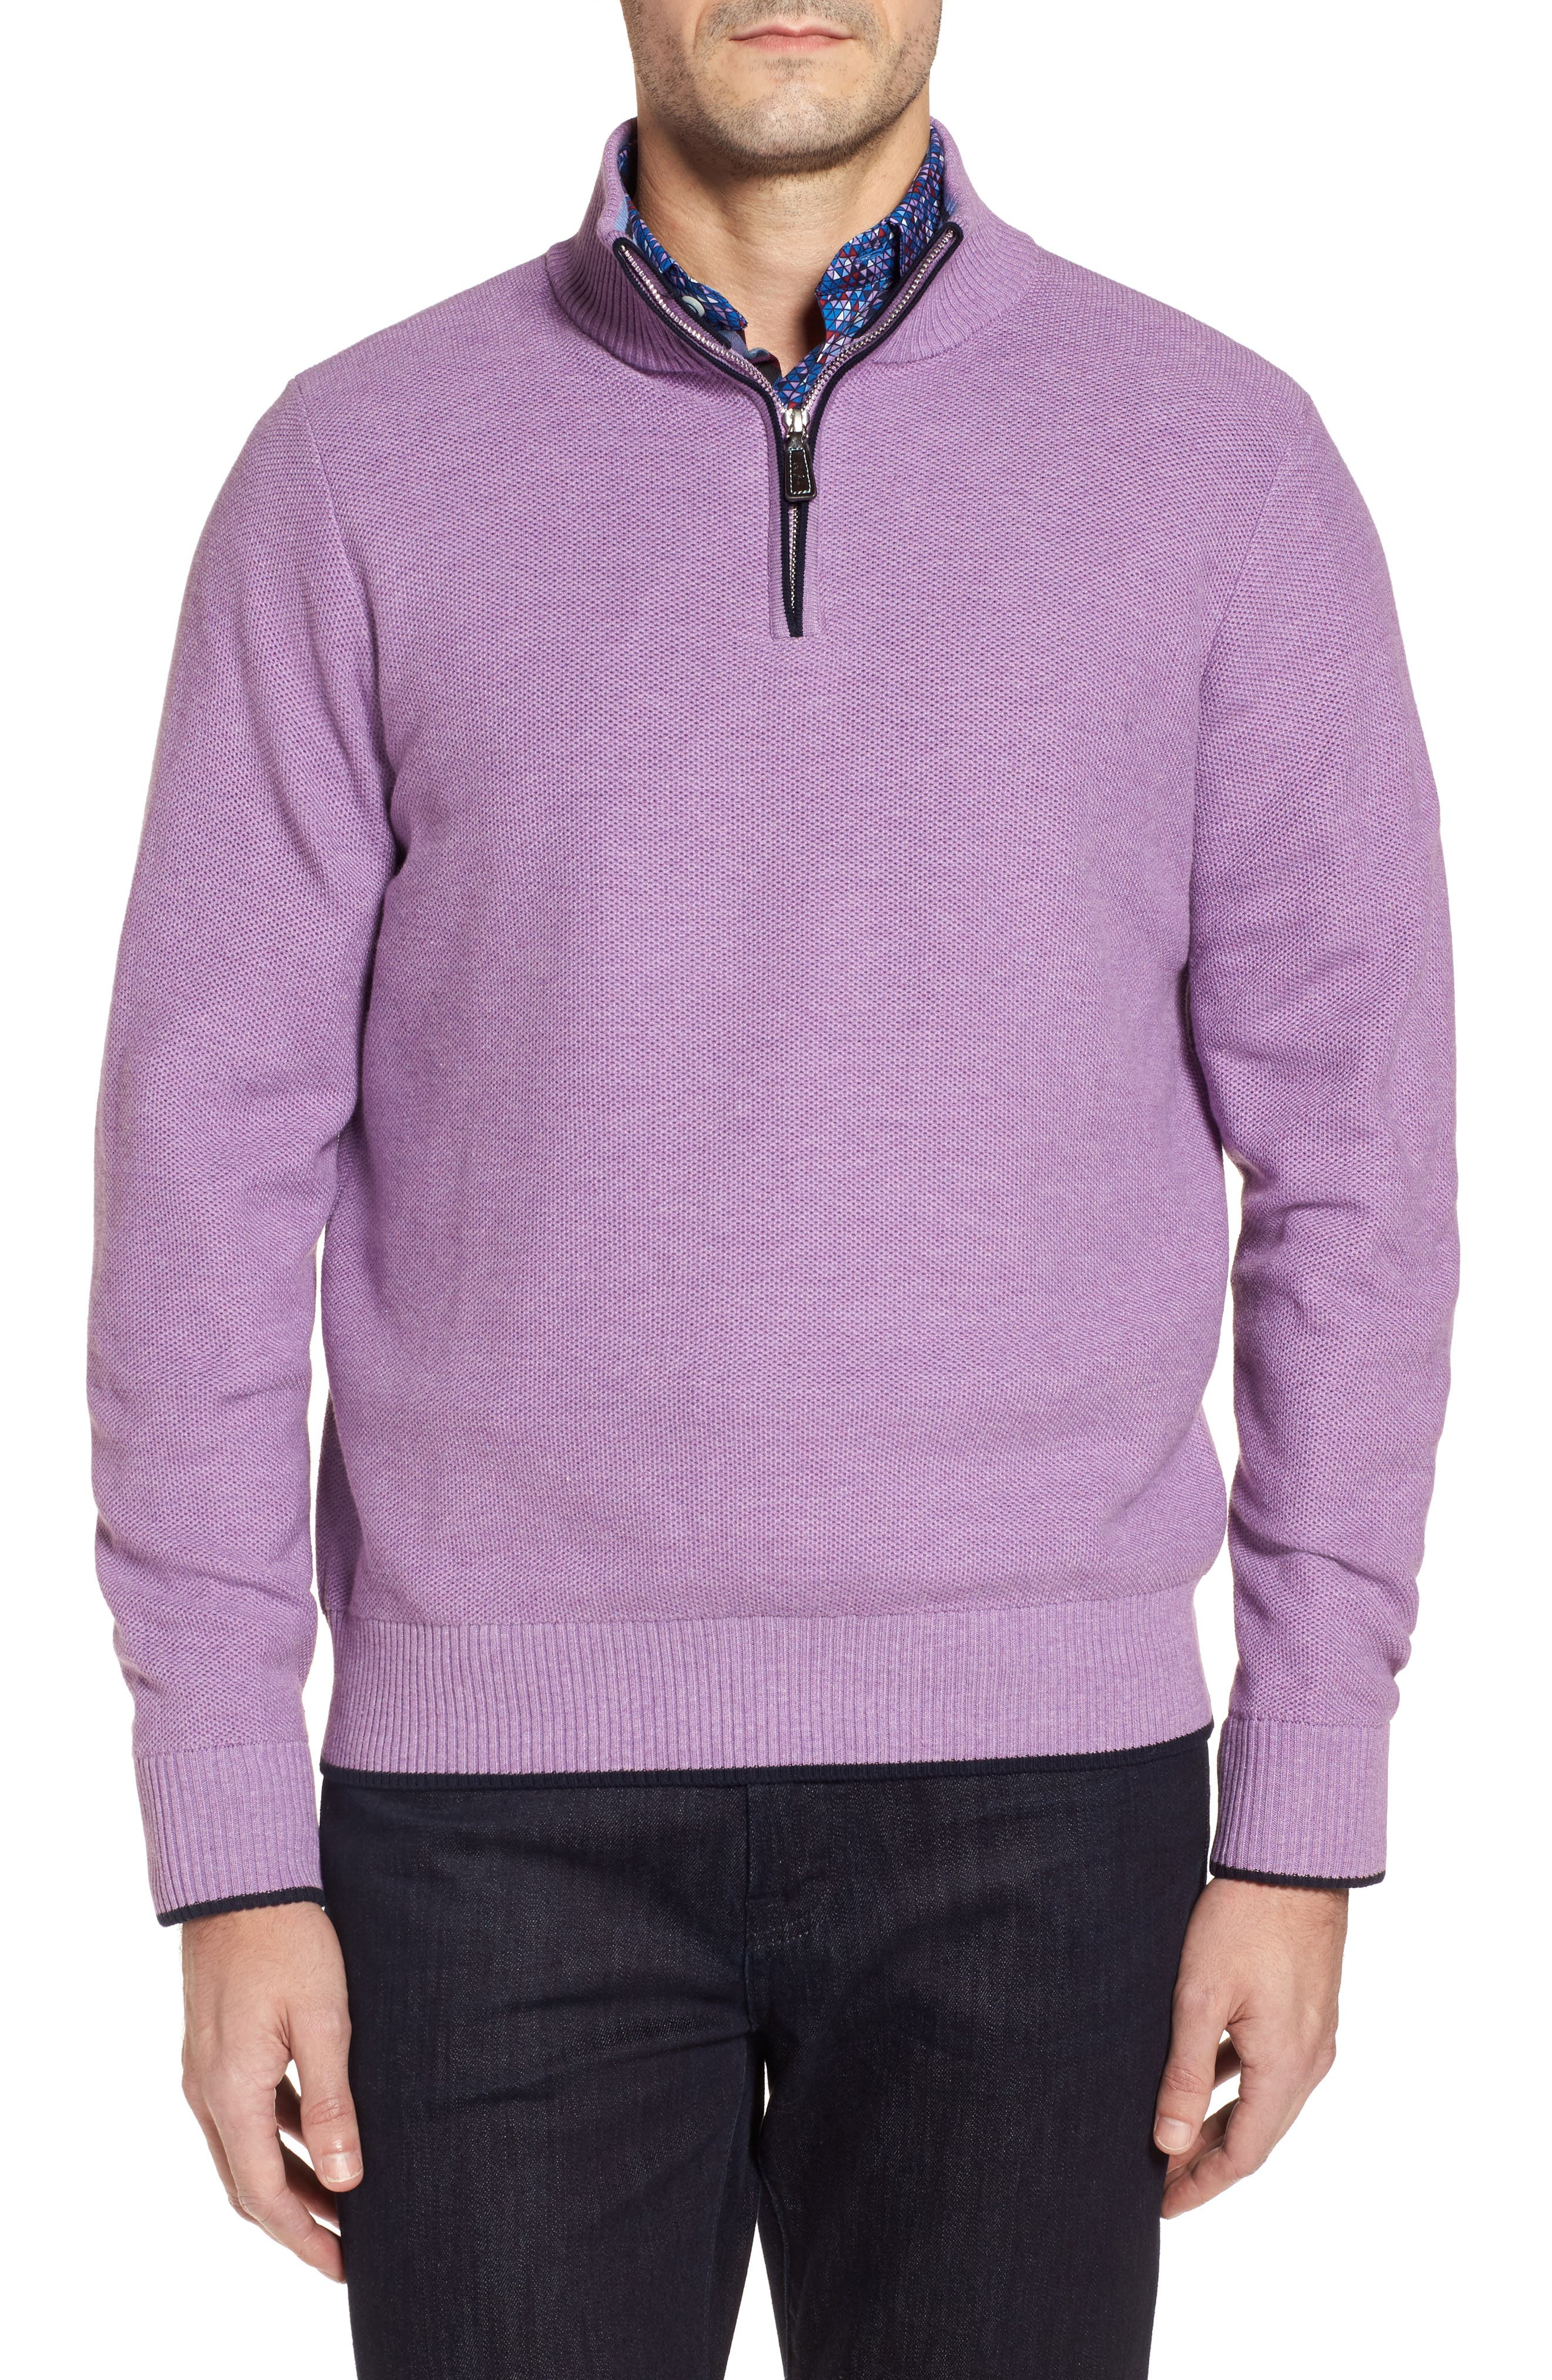 Ossun Tipped Quarter Zip Sweater,                             Main thumbnail 1, color,